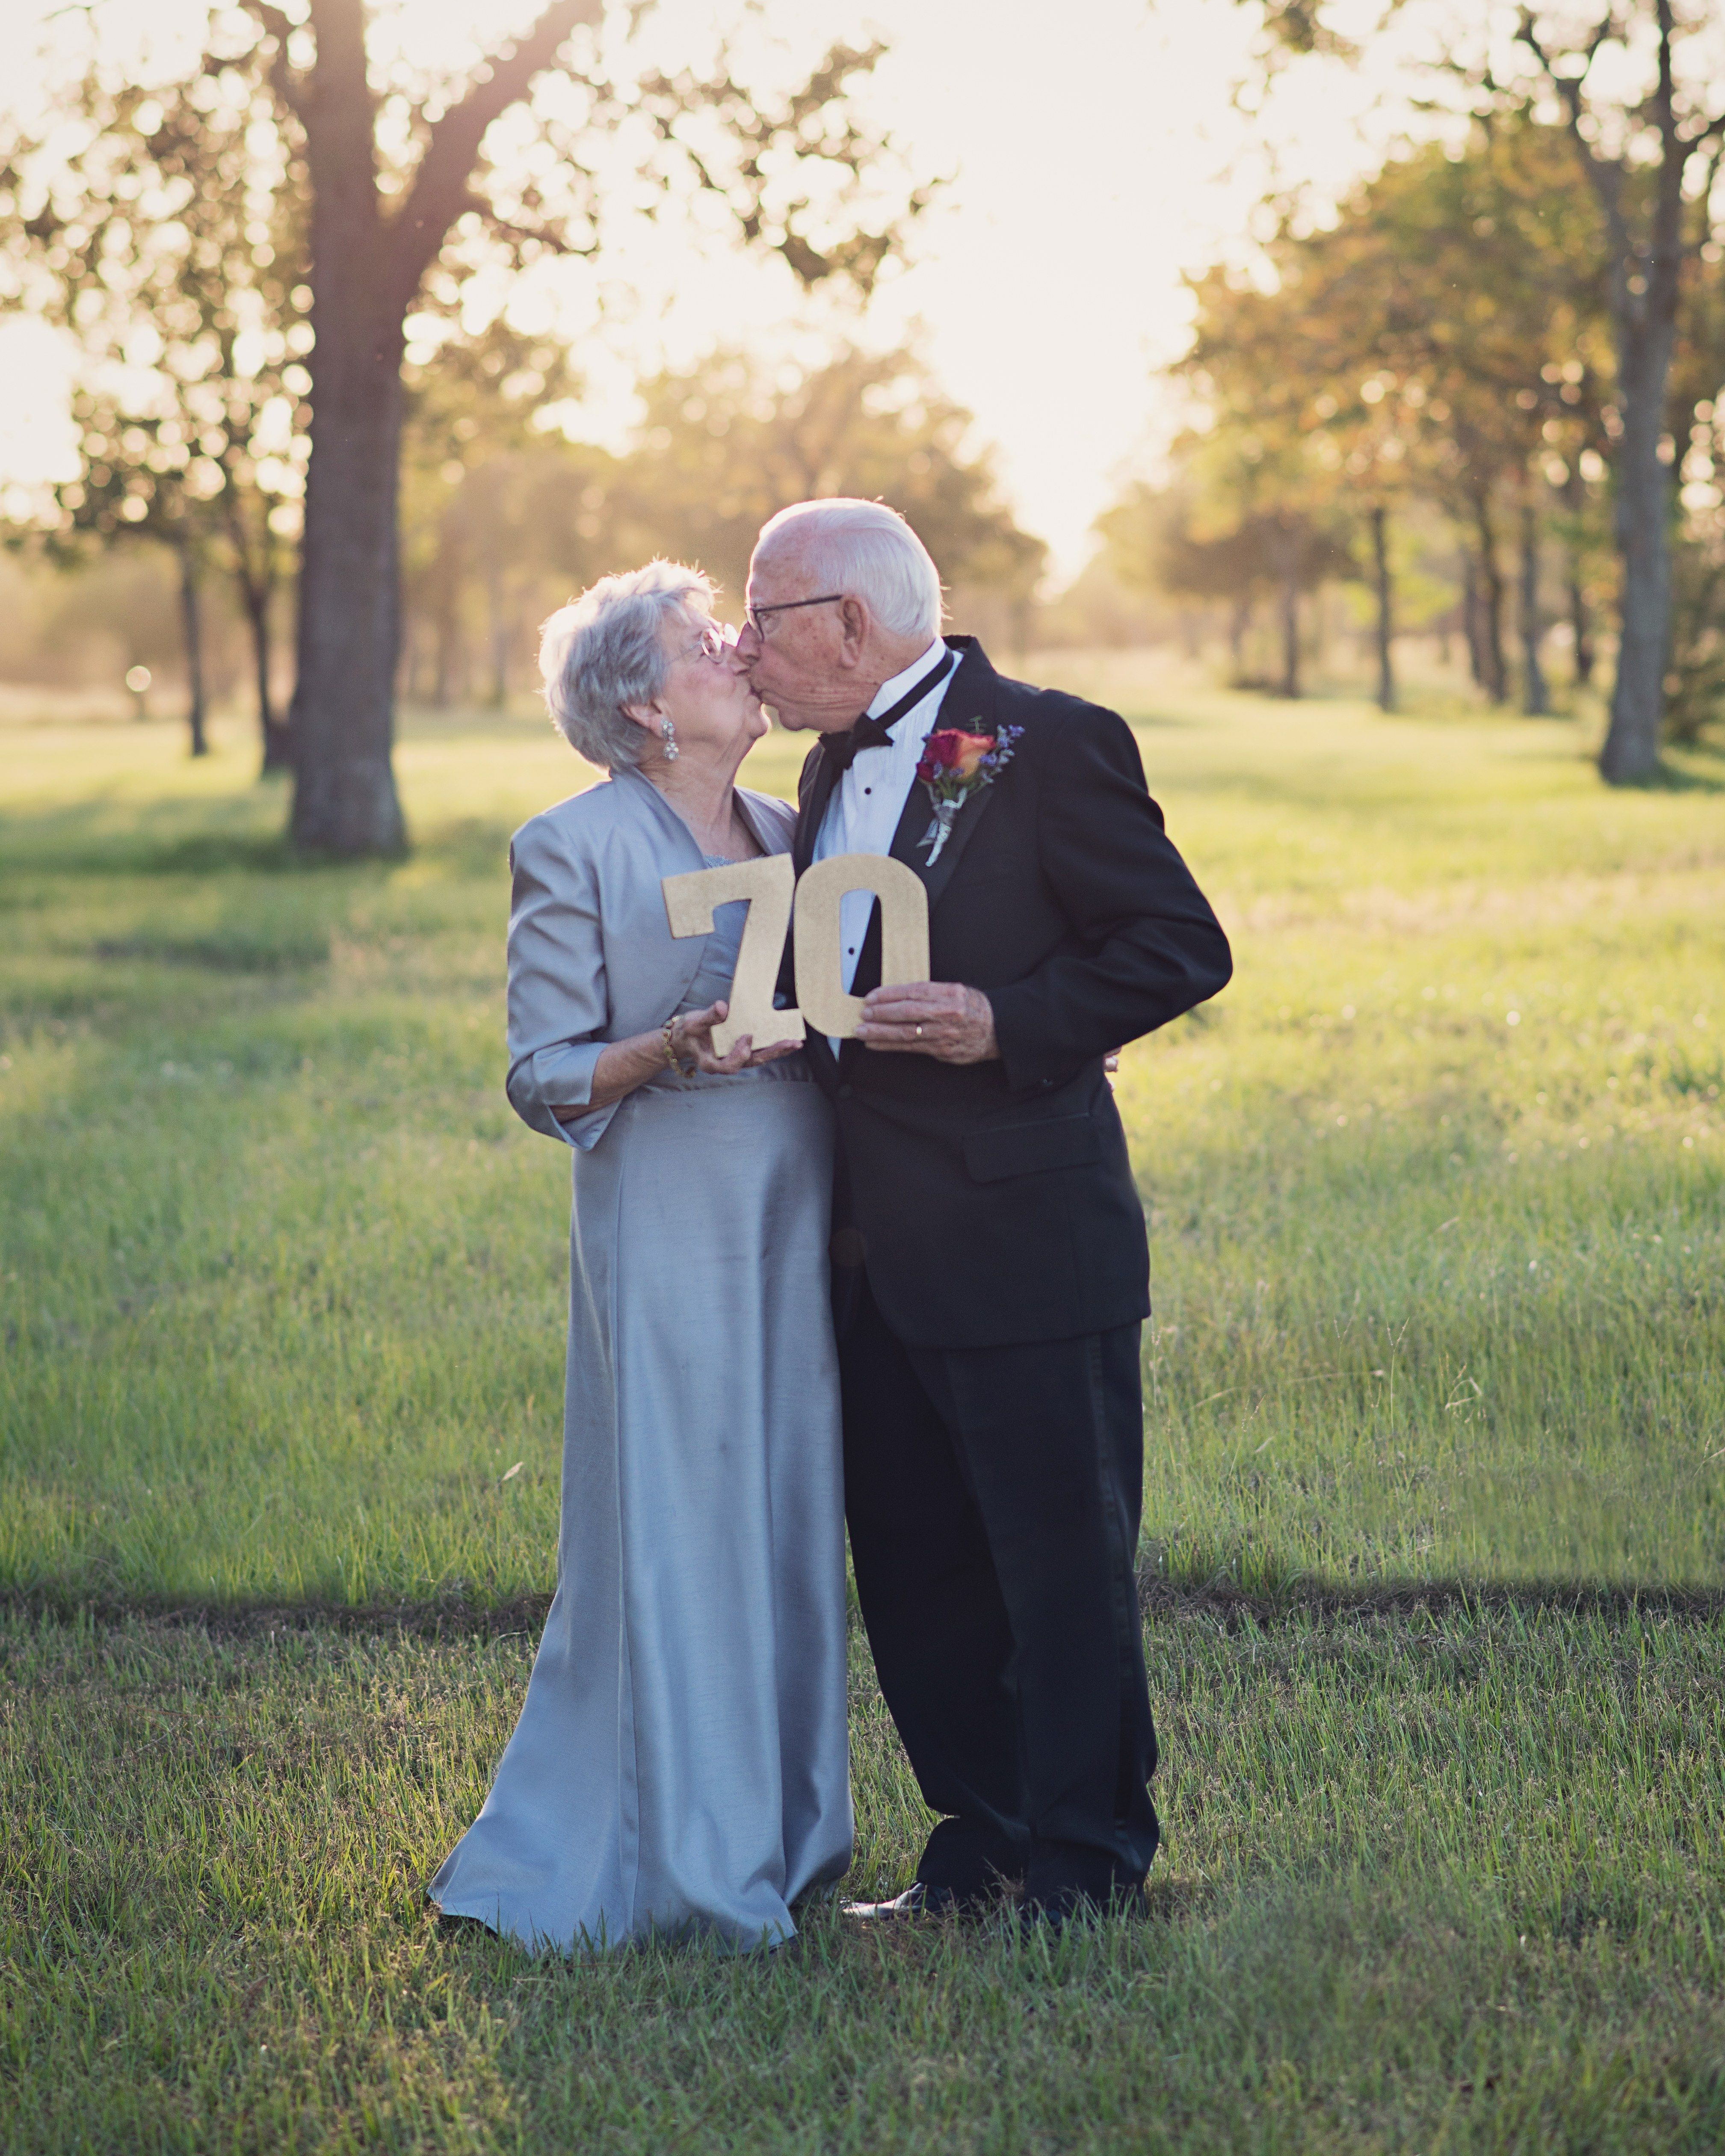 Wedding Reception Ideas For Older Couples: After 70 Years Of Marriage, This Couple Received The